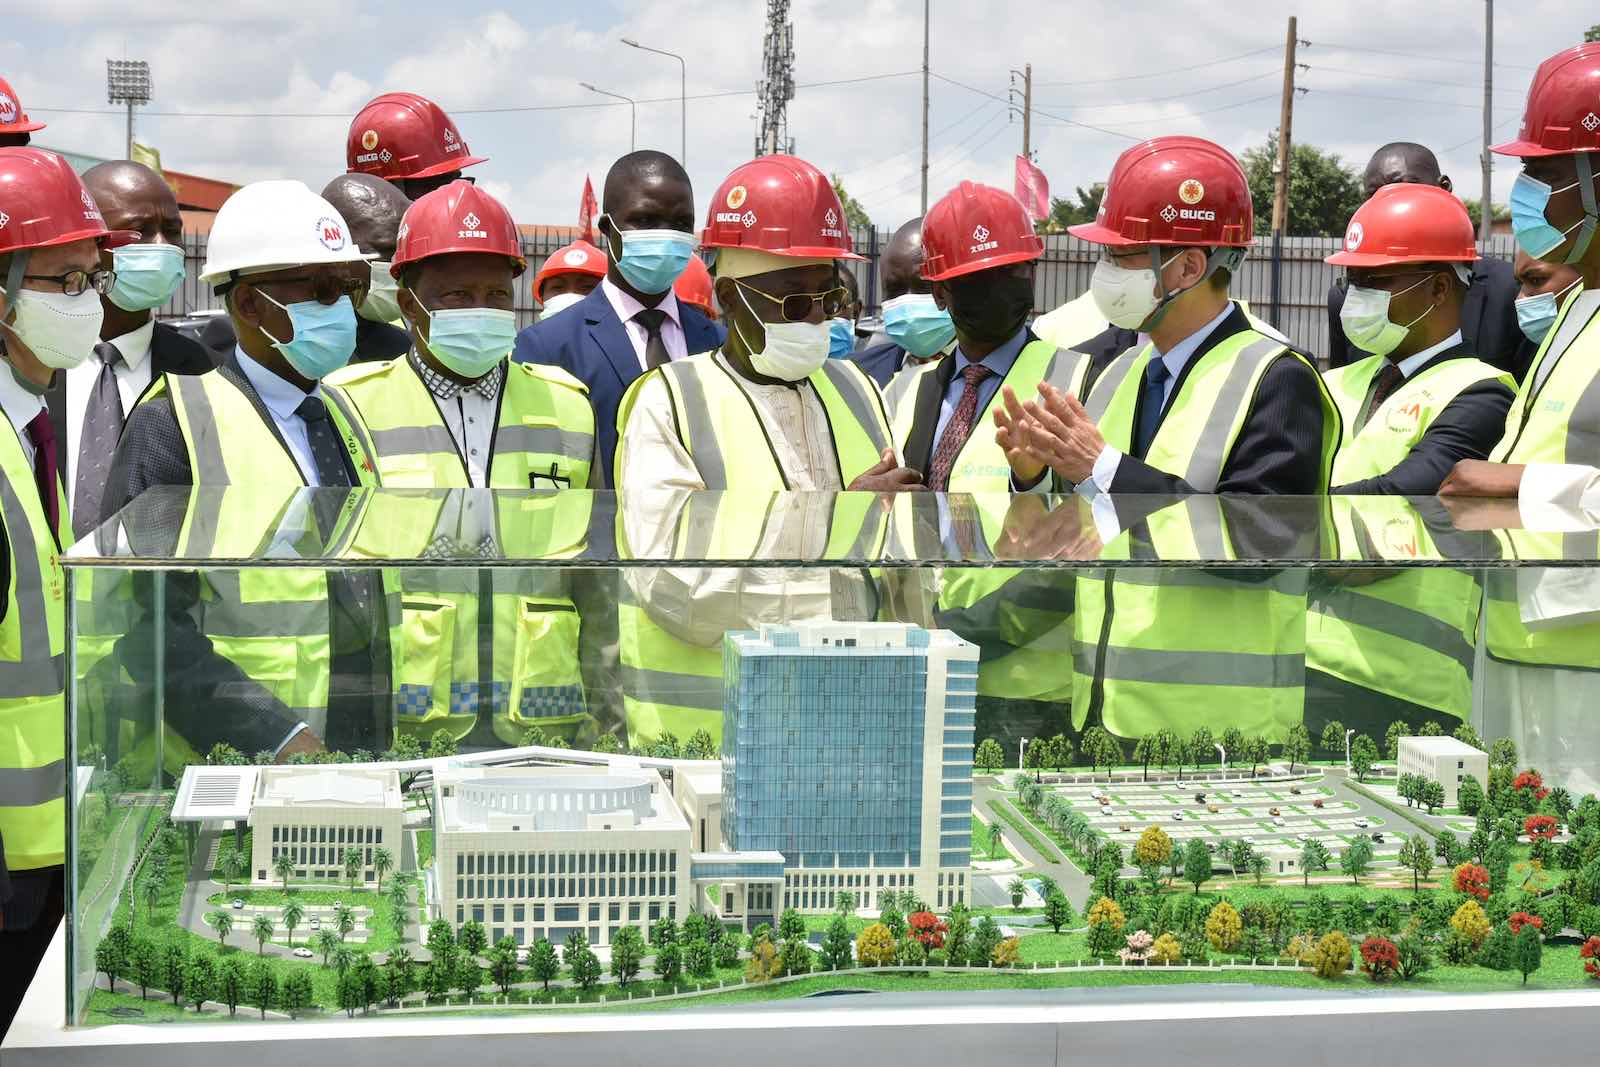 Cameroonian officials and the Chinese Ambassador to Cameroon visit the site of the country's new National Assembly building, a China-aided project under construction in Yaounde, Cameroon, 23 March 2021 (Jean Pierre Kepseu/Xinhua via Getty Images)